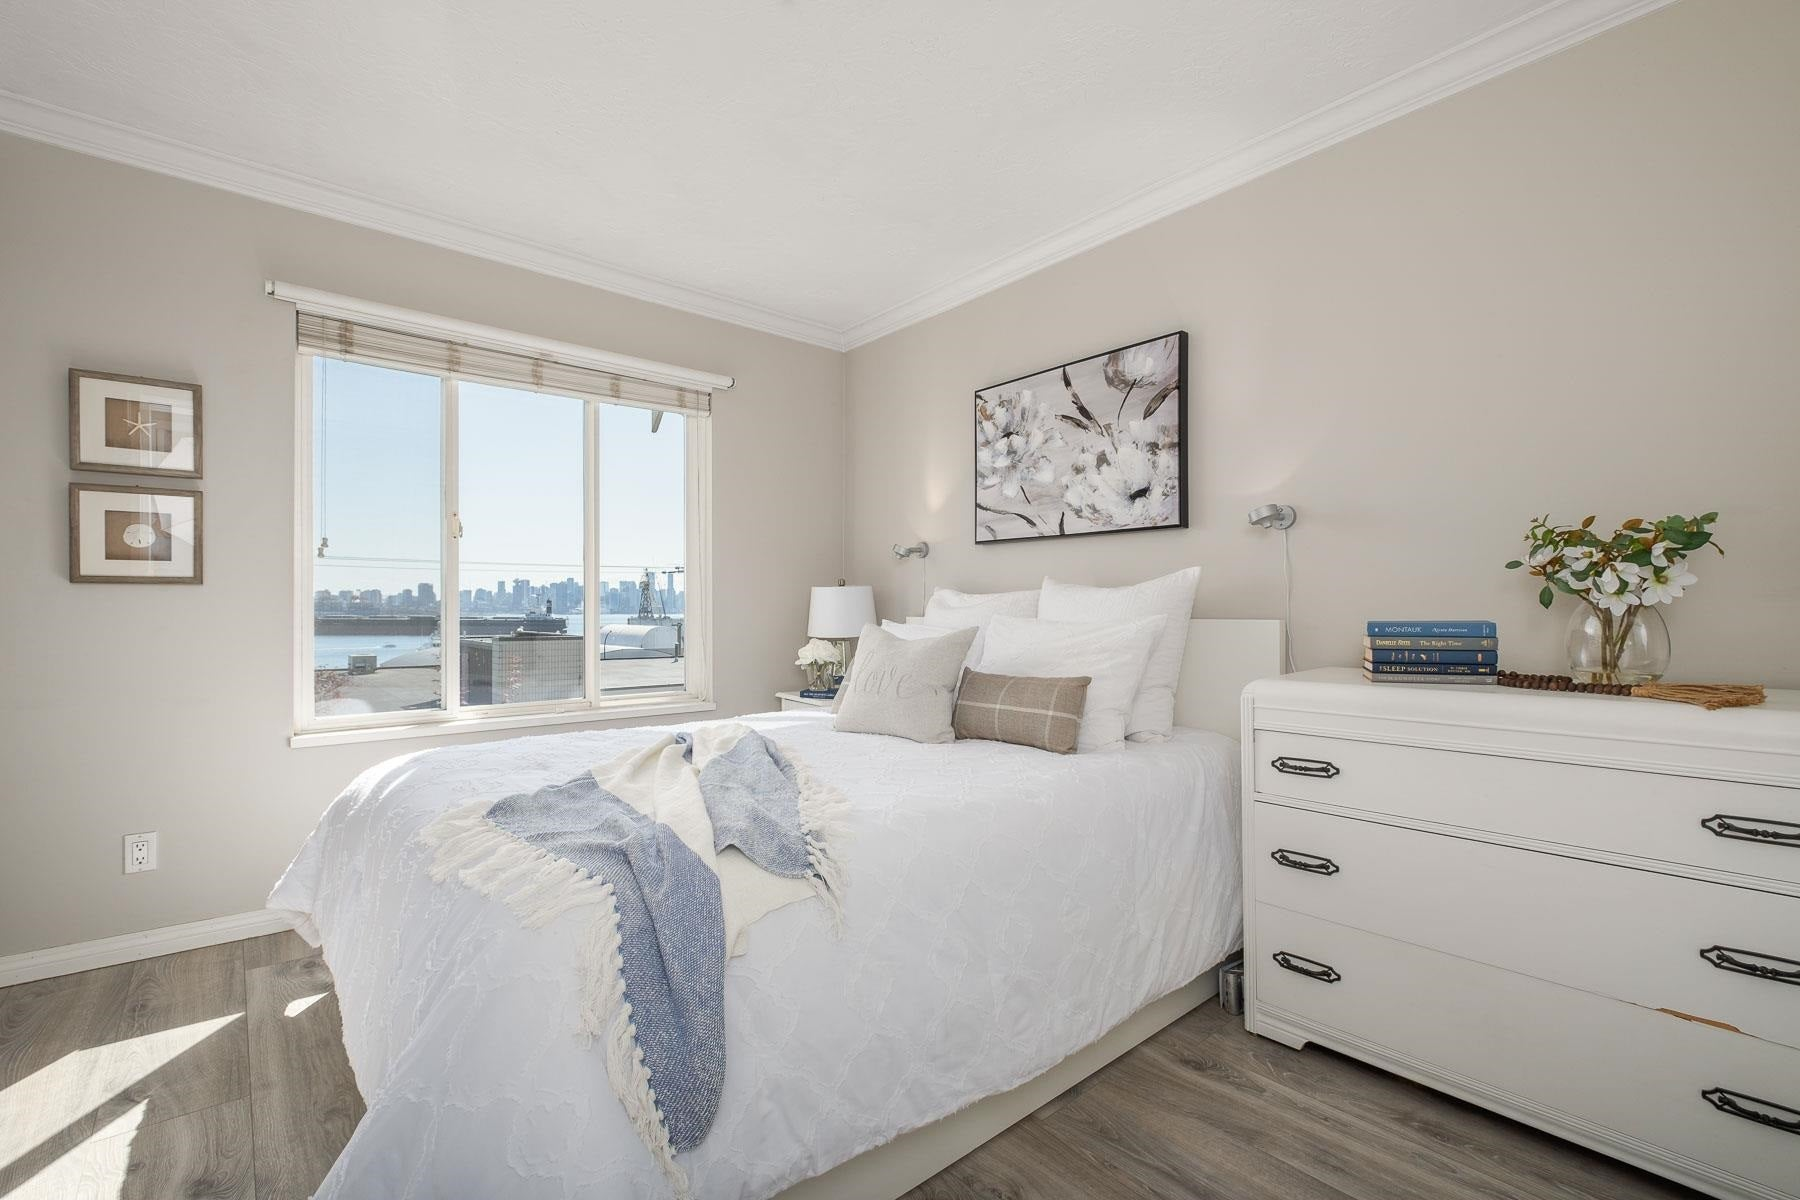 205 333 E 1ST STREET - Lower Lonsdale Apartment/Condo for sale, 1 Bedroom (R2618010) - #19